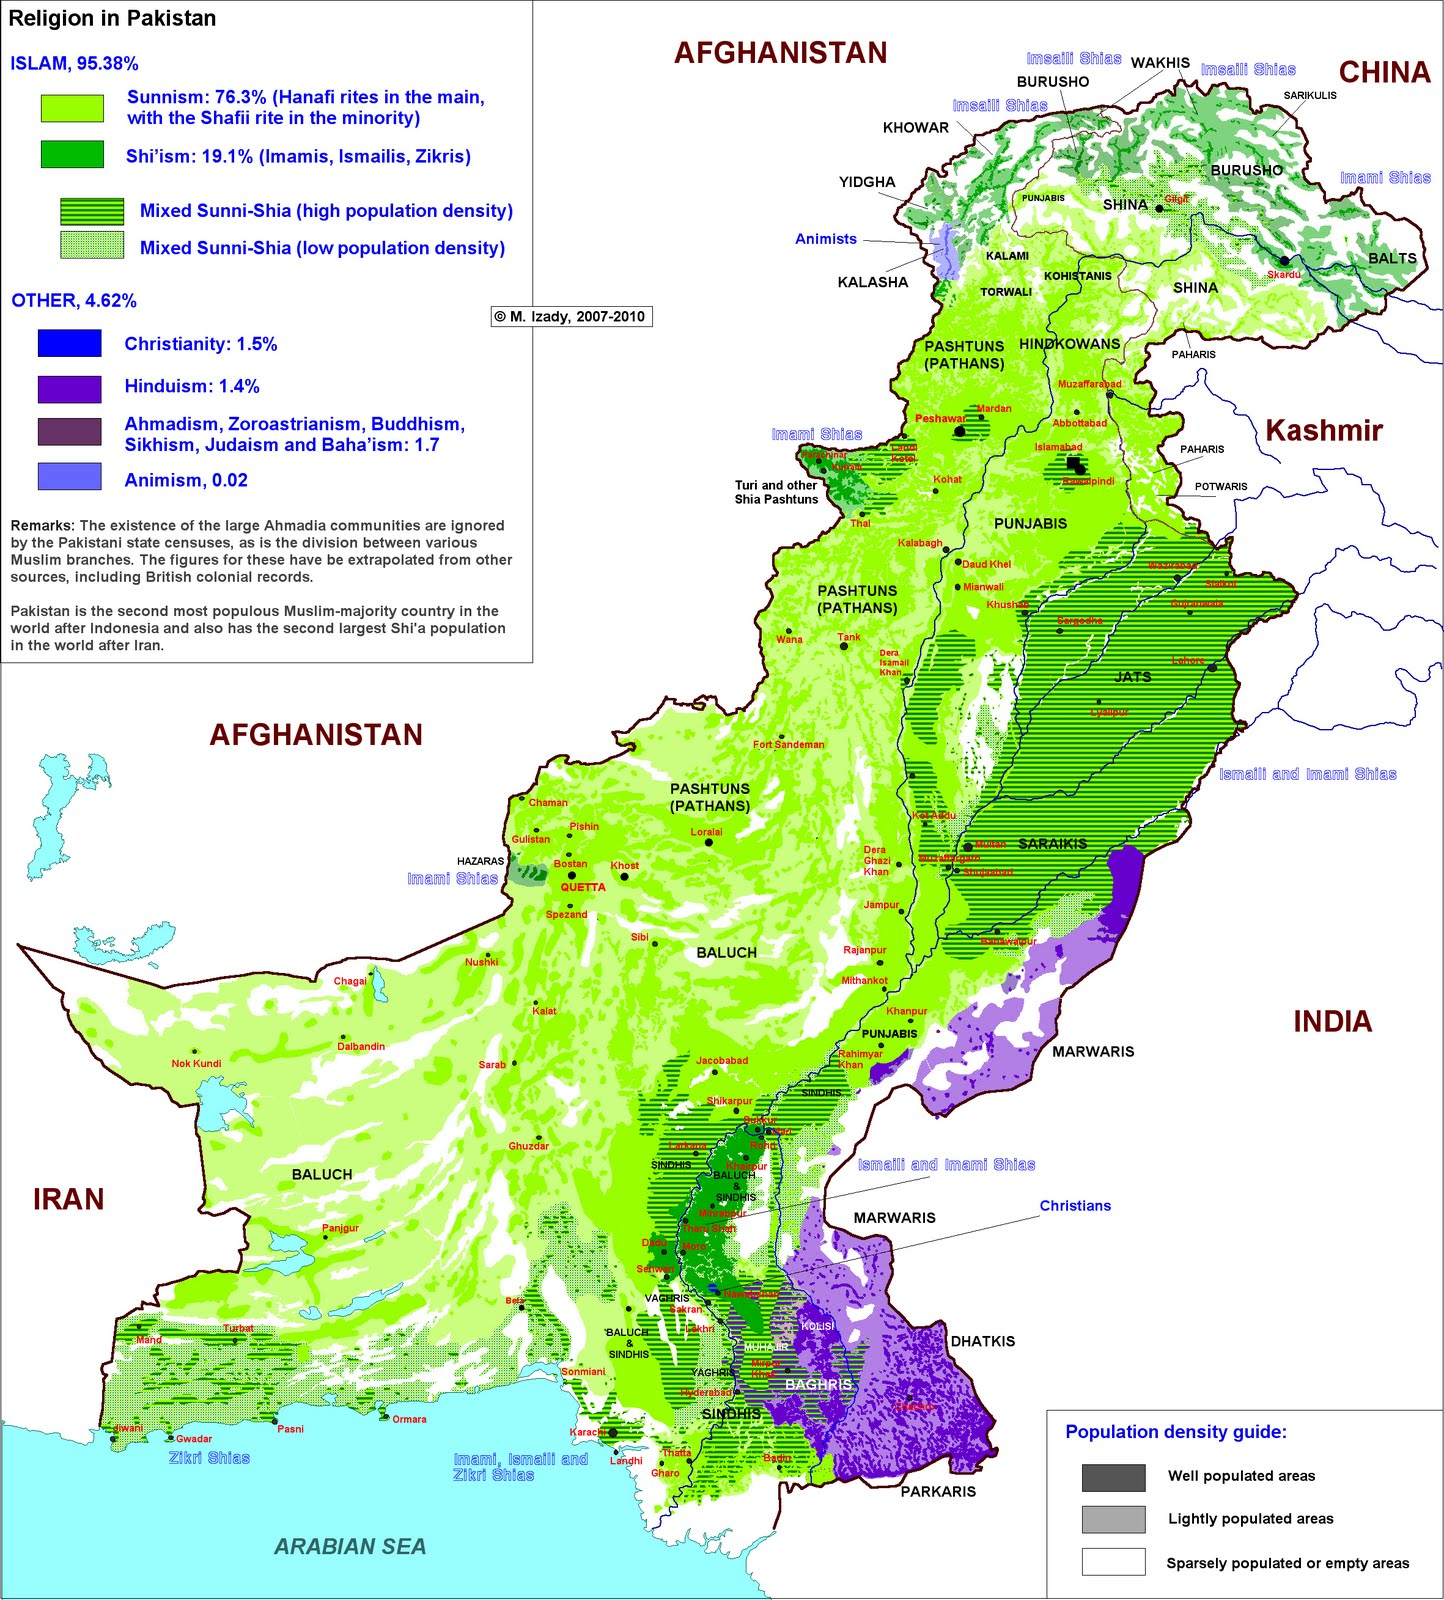 Religion in Pakistan